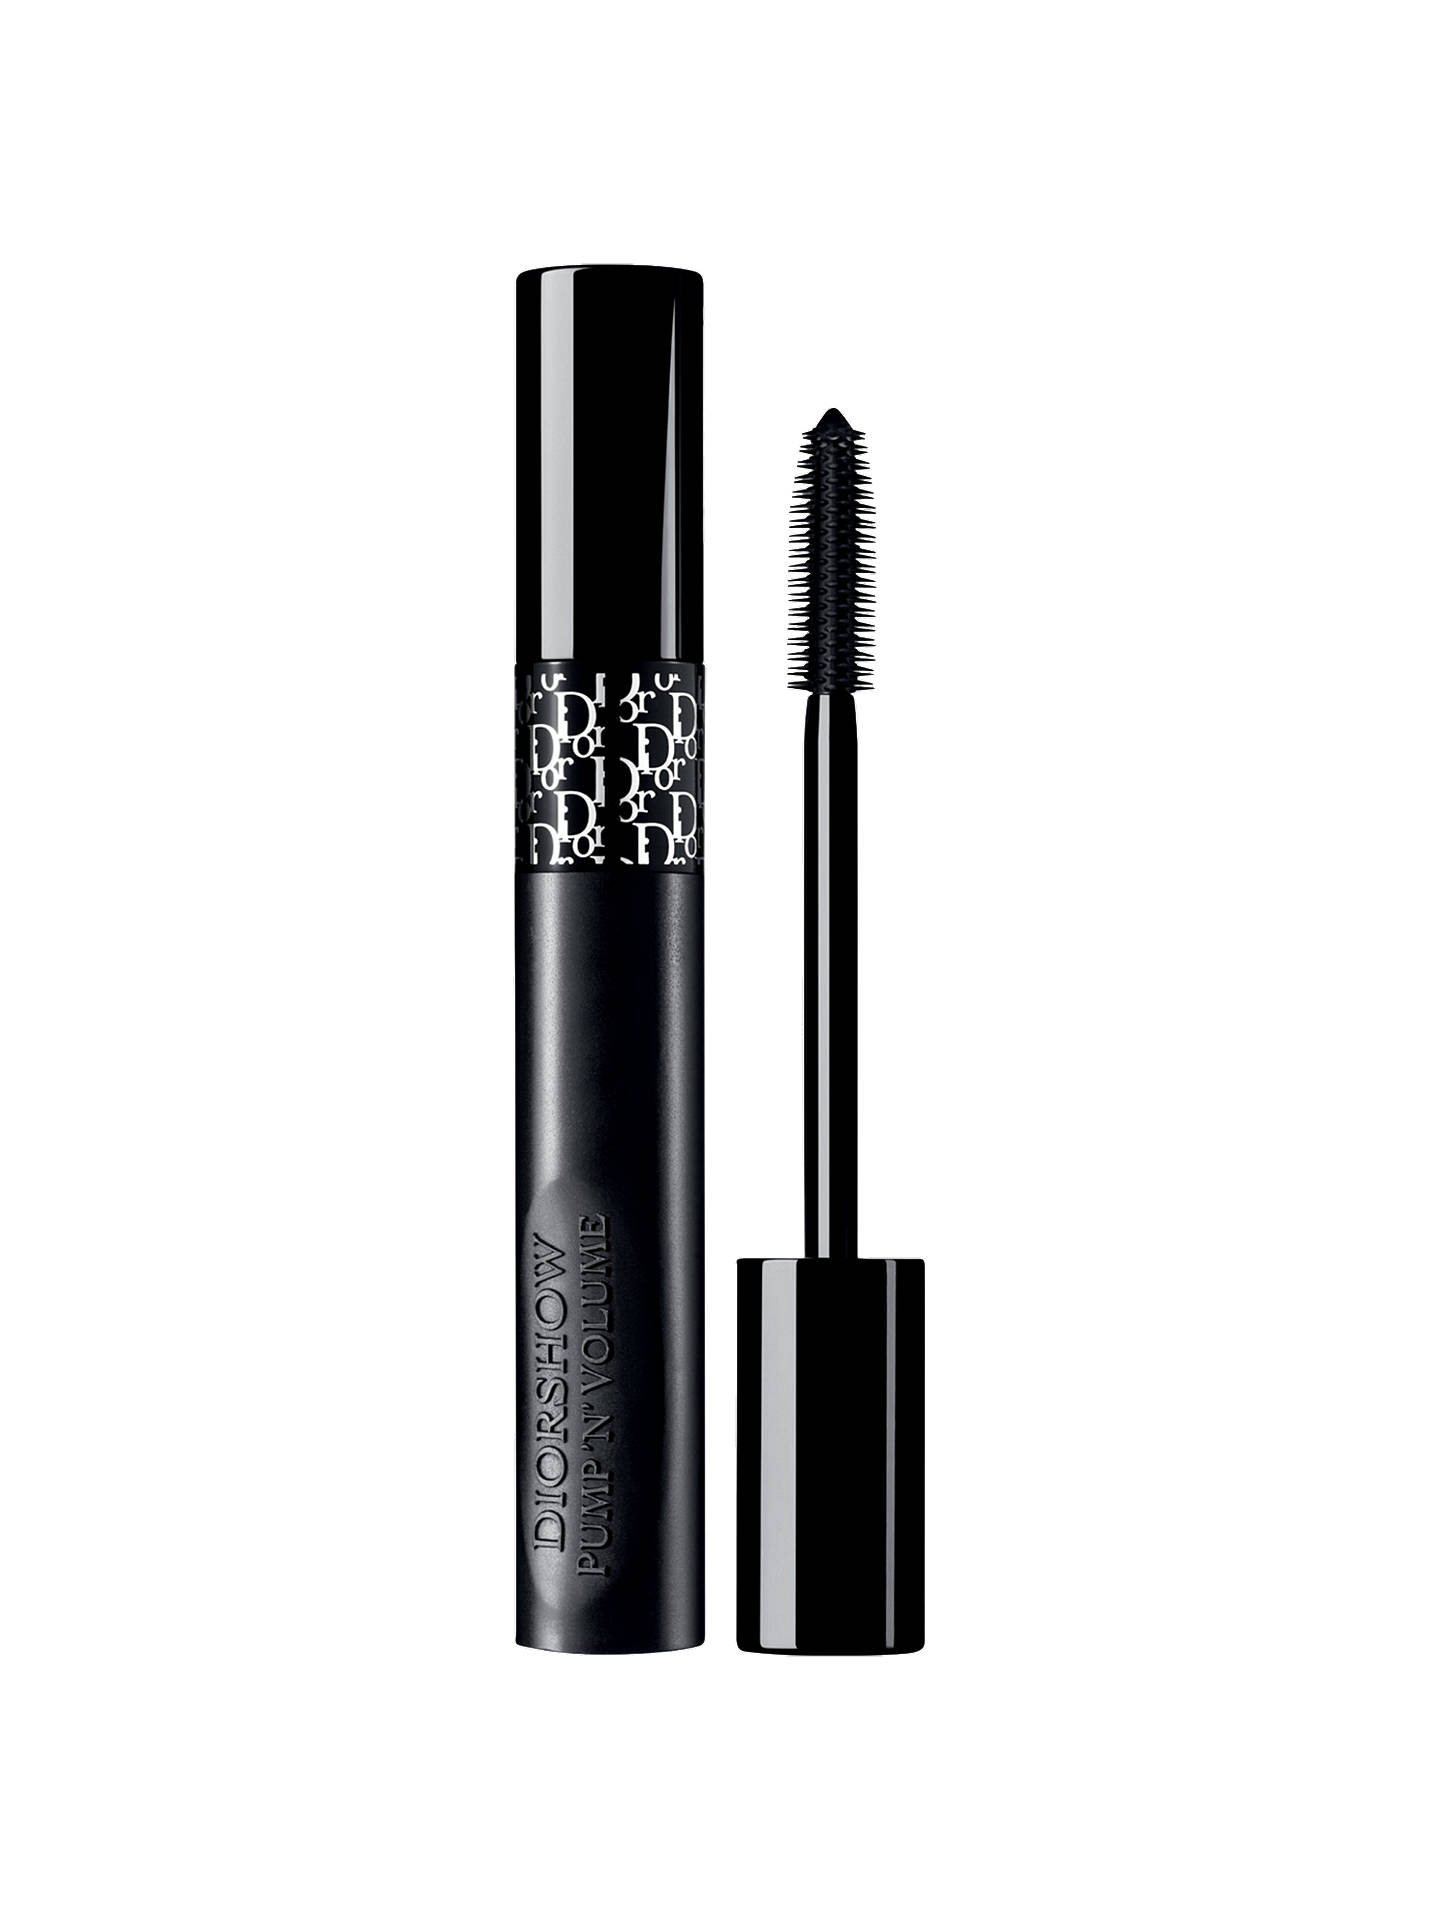 dior mascara  Dior Diorshow Pump 'N' Volume Mascara, Black 090 at John Lewis ...